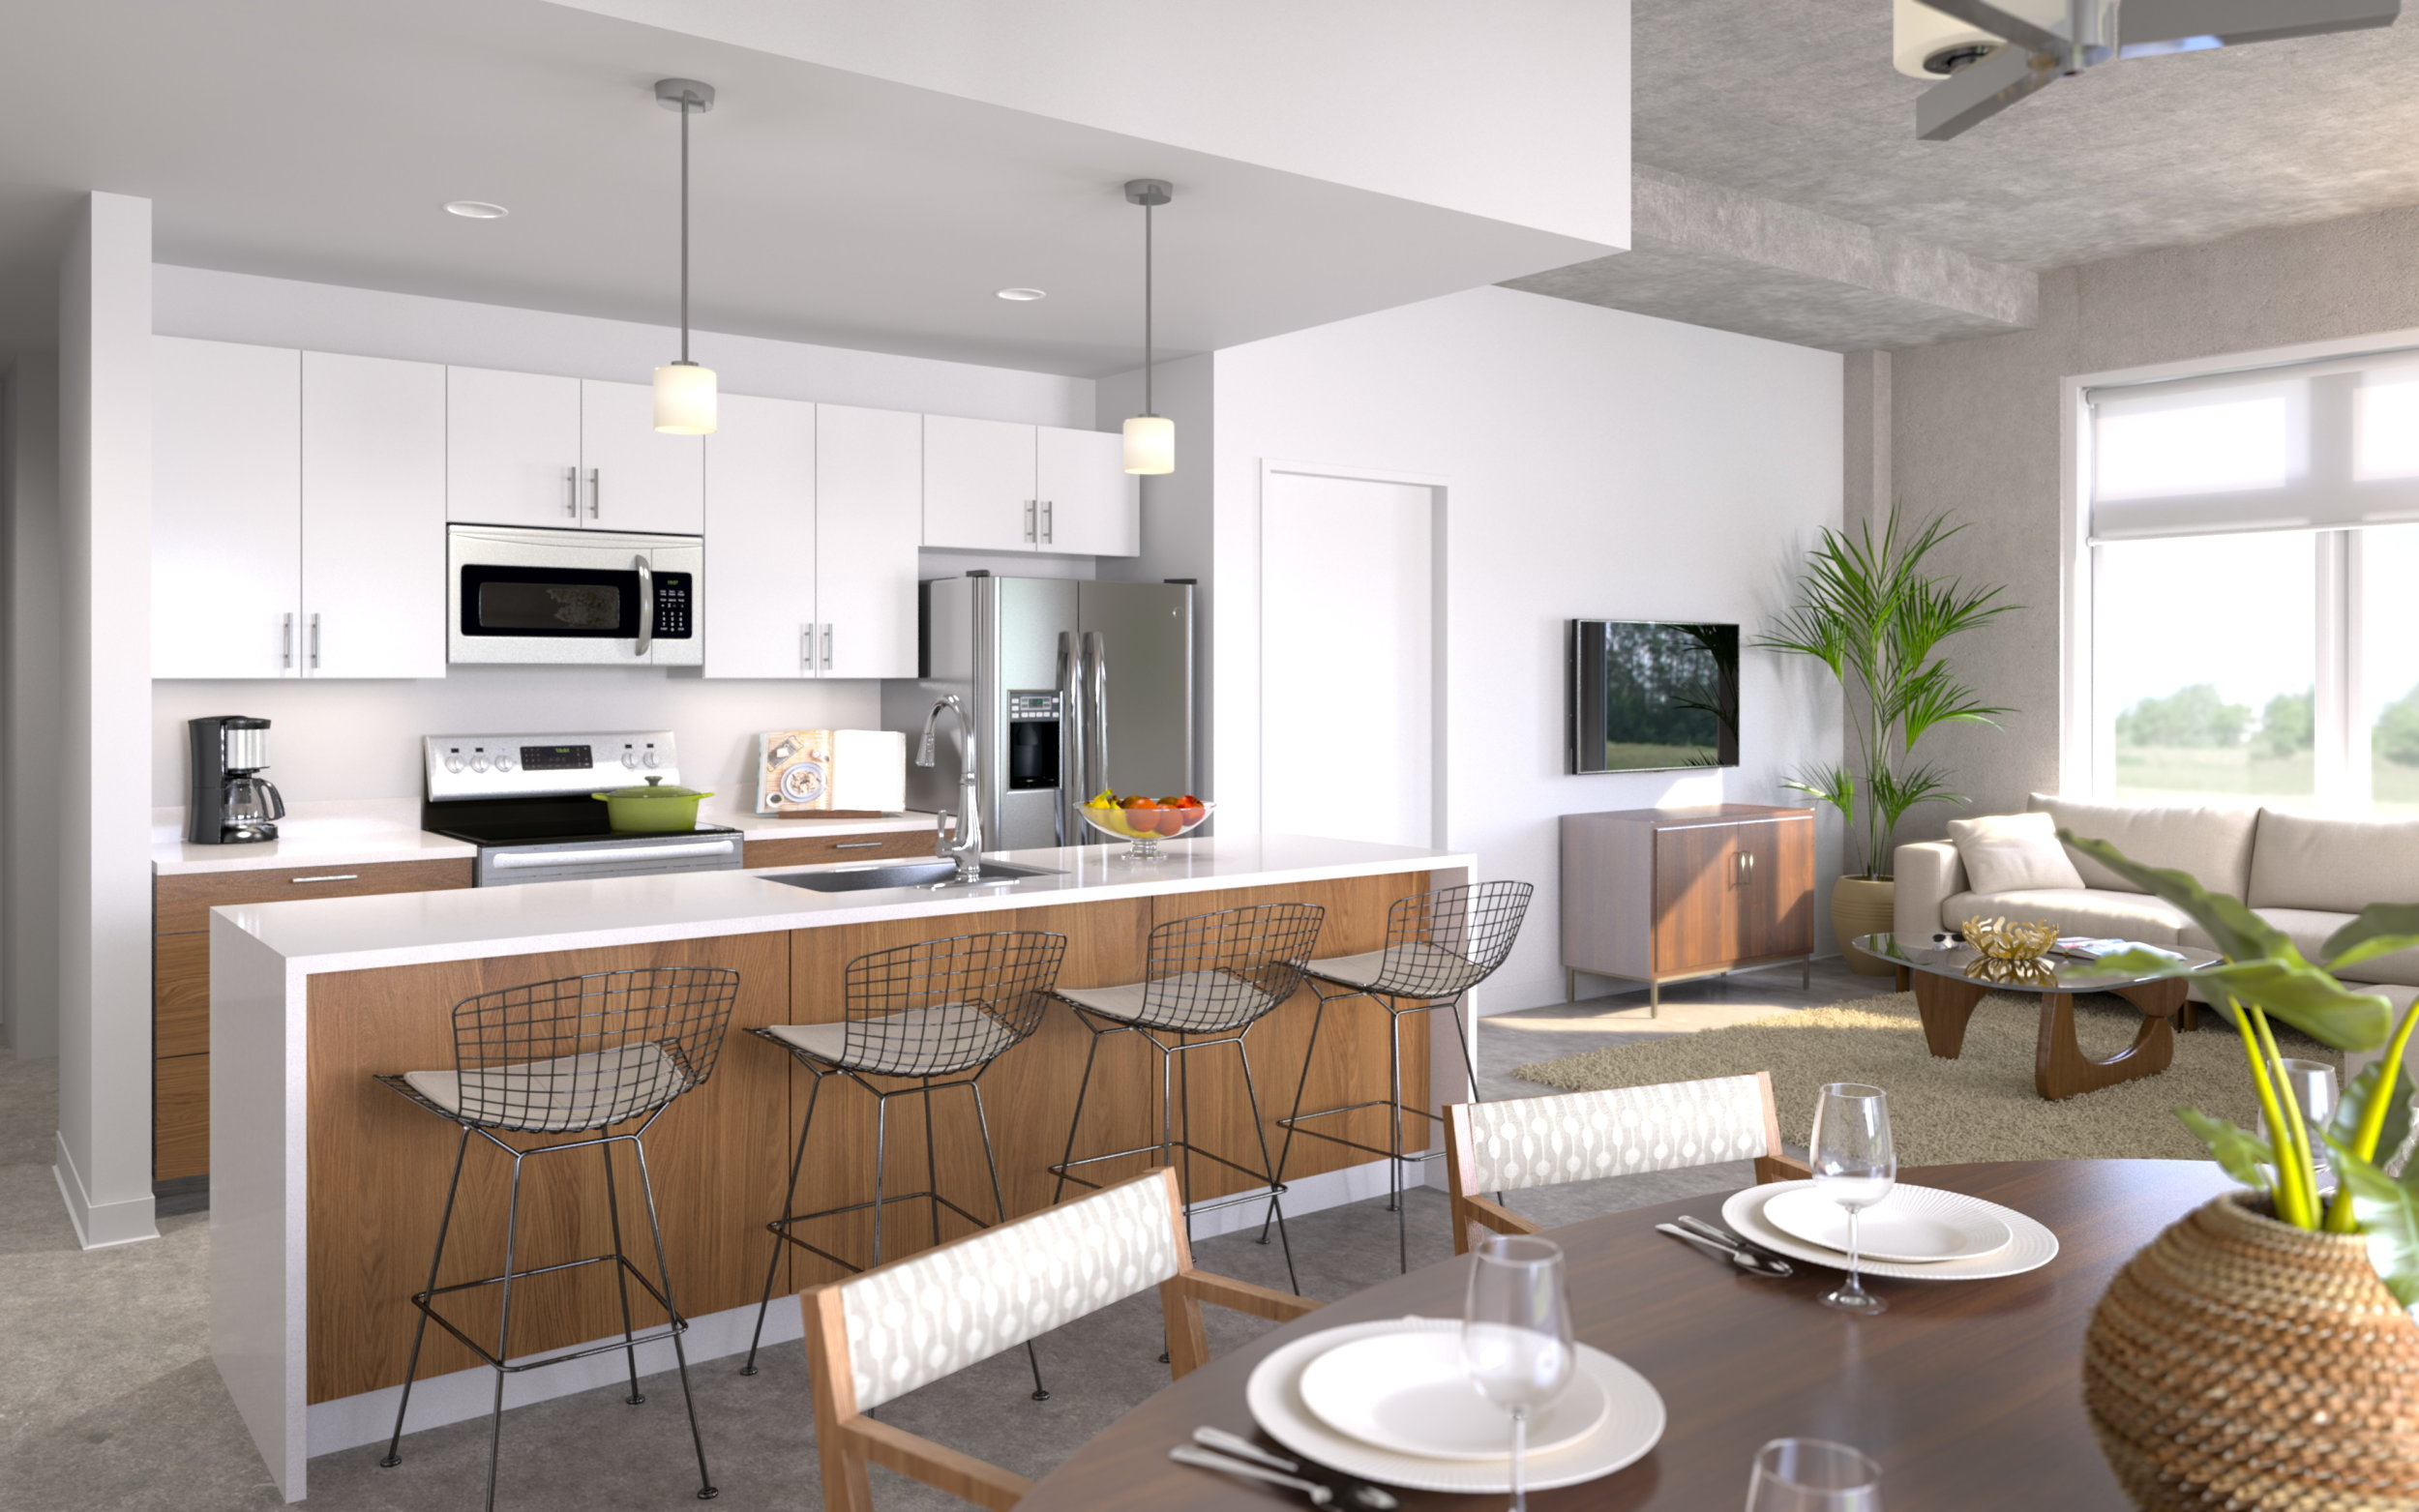 The smarter, stronger and more sustainable designs are modern, featuring lofty ceilings, above average square-foot layouts and polished cement floors.